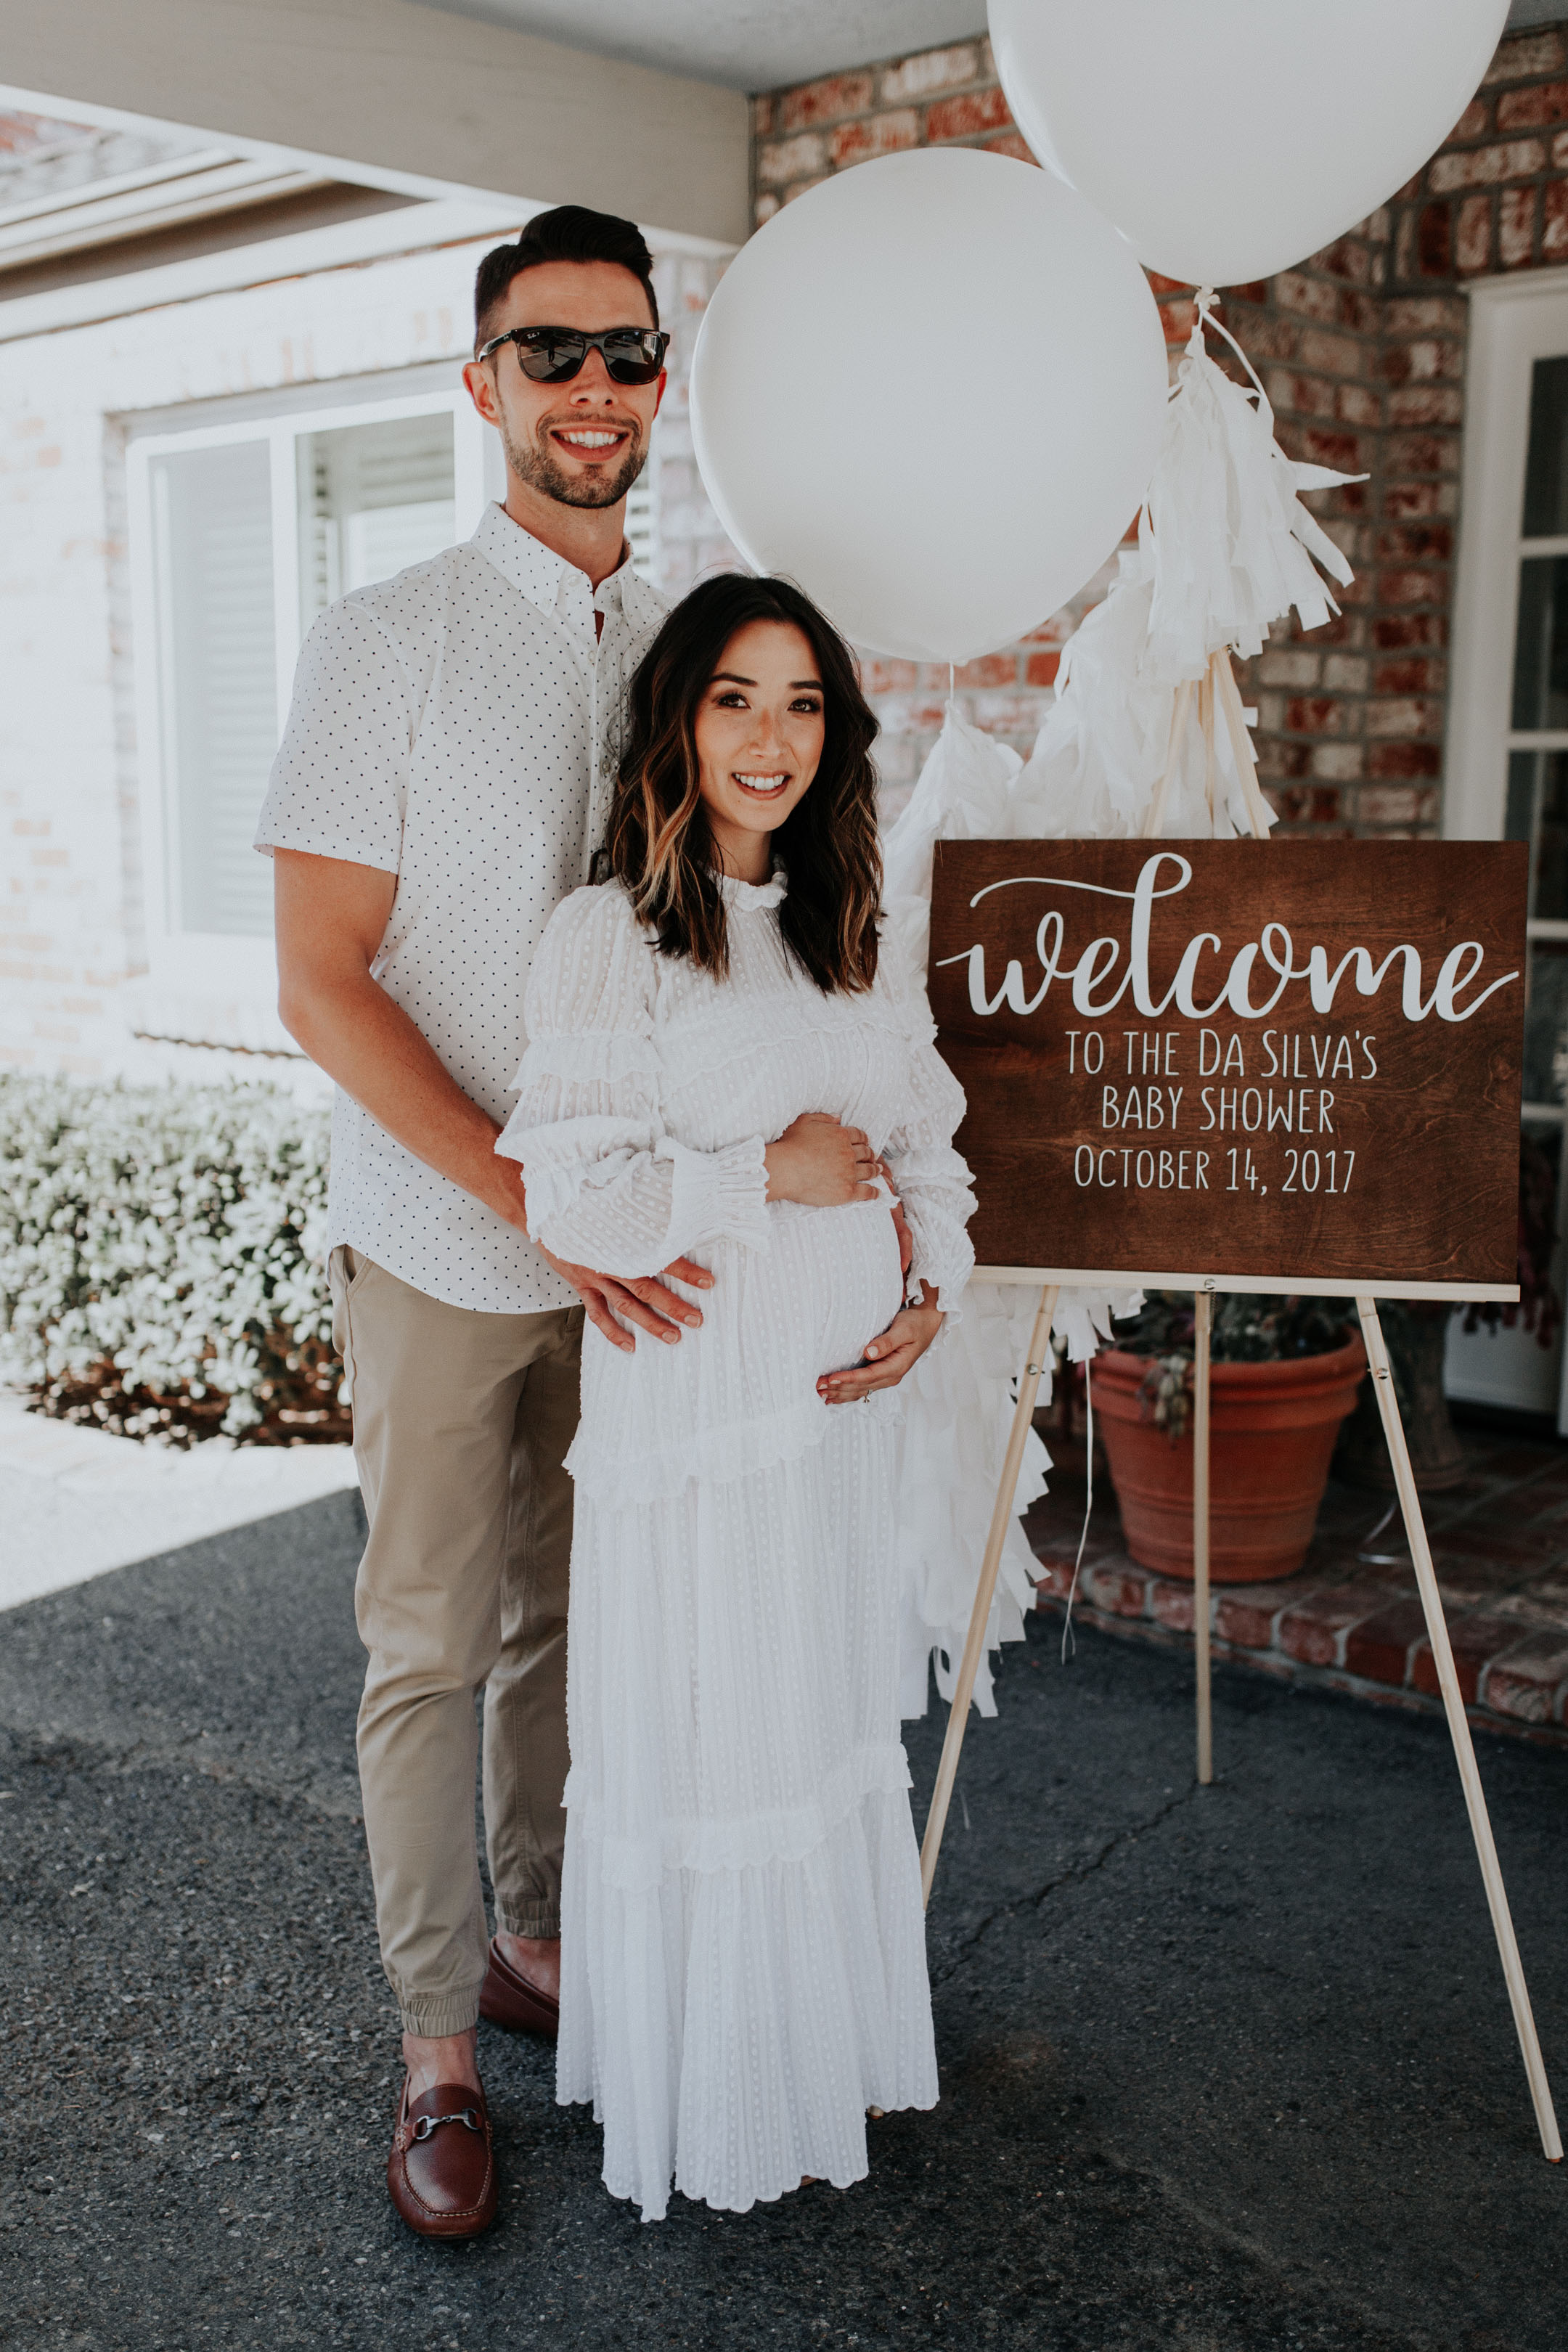 Crystalin Marie baby shower welcome sign